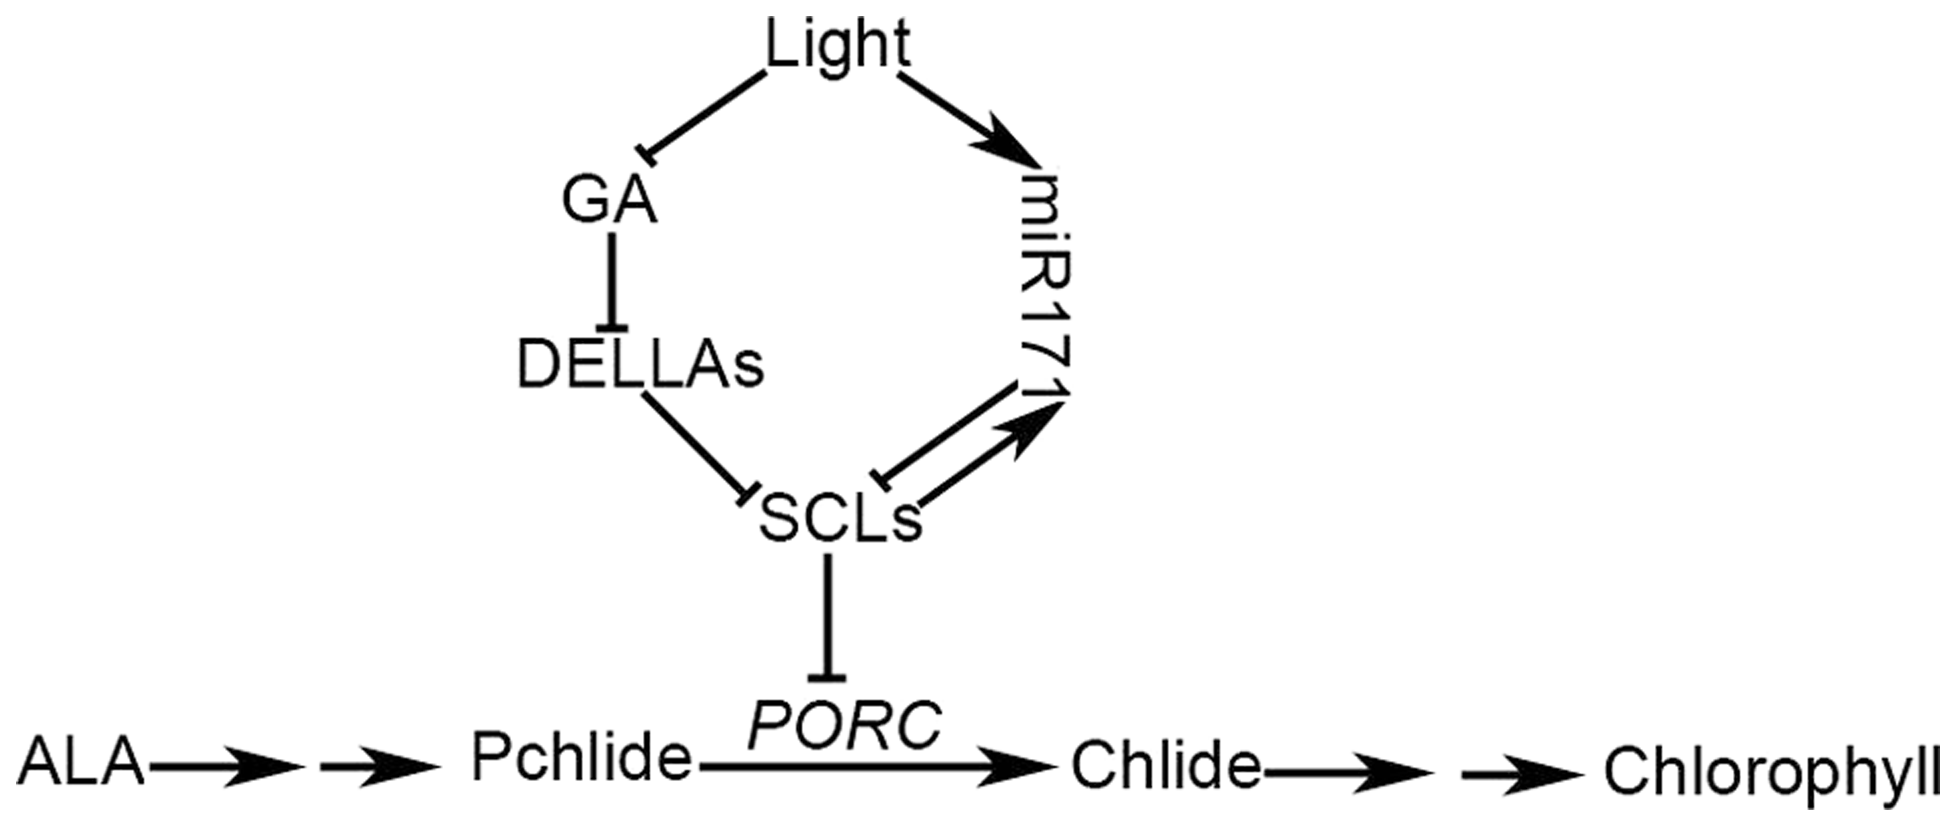 A working model of GA-regulated chlorophyll biosynthesis under the light condition.